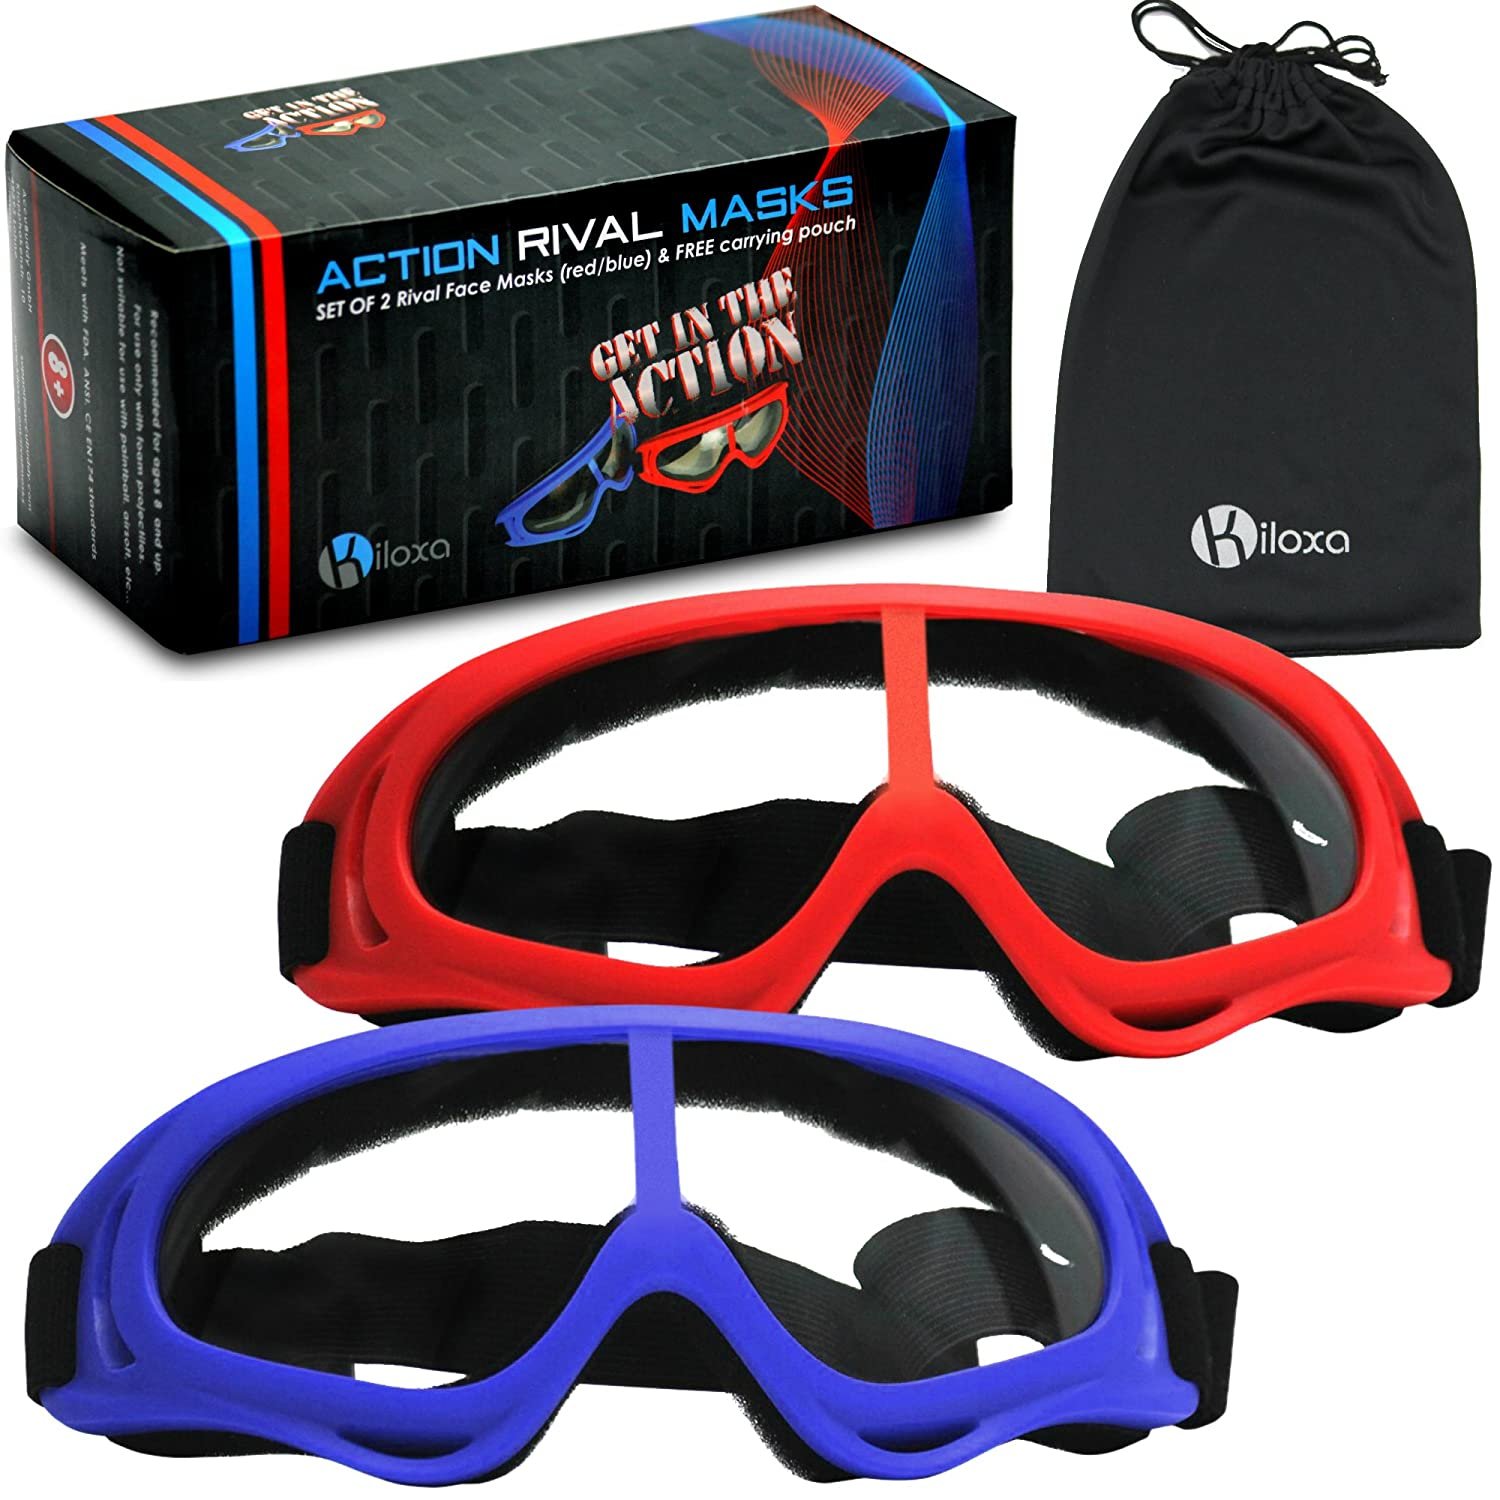 Amazon Rival Mask Eye Safety Gear for Nerf Rival Games and Battles 2 Pack Red Blue Foam Gun and Blaster Face Mask Goggles with Anti Fog Protection